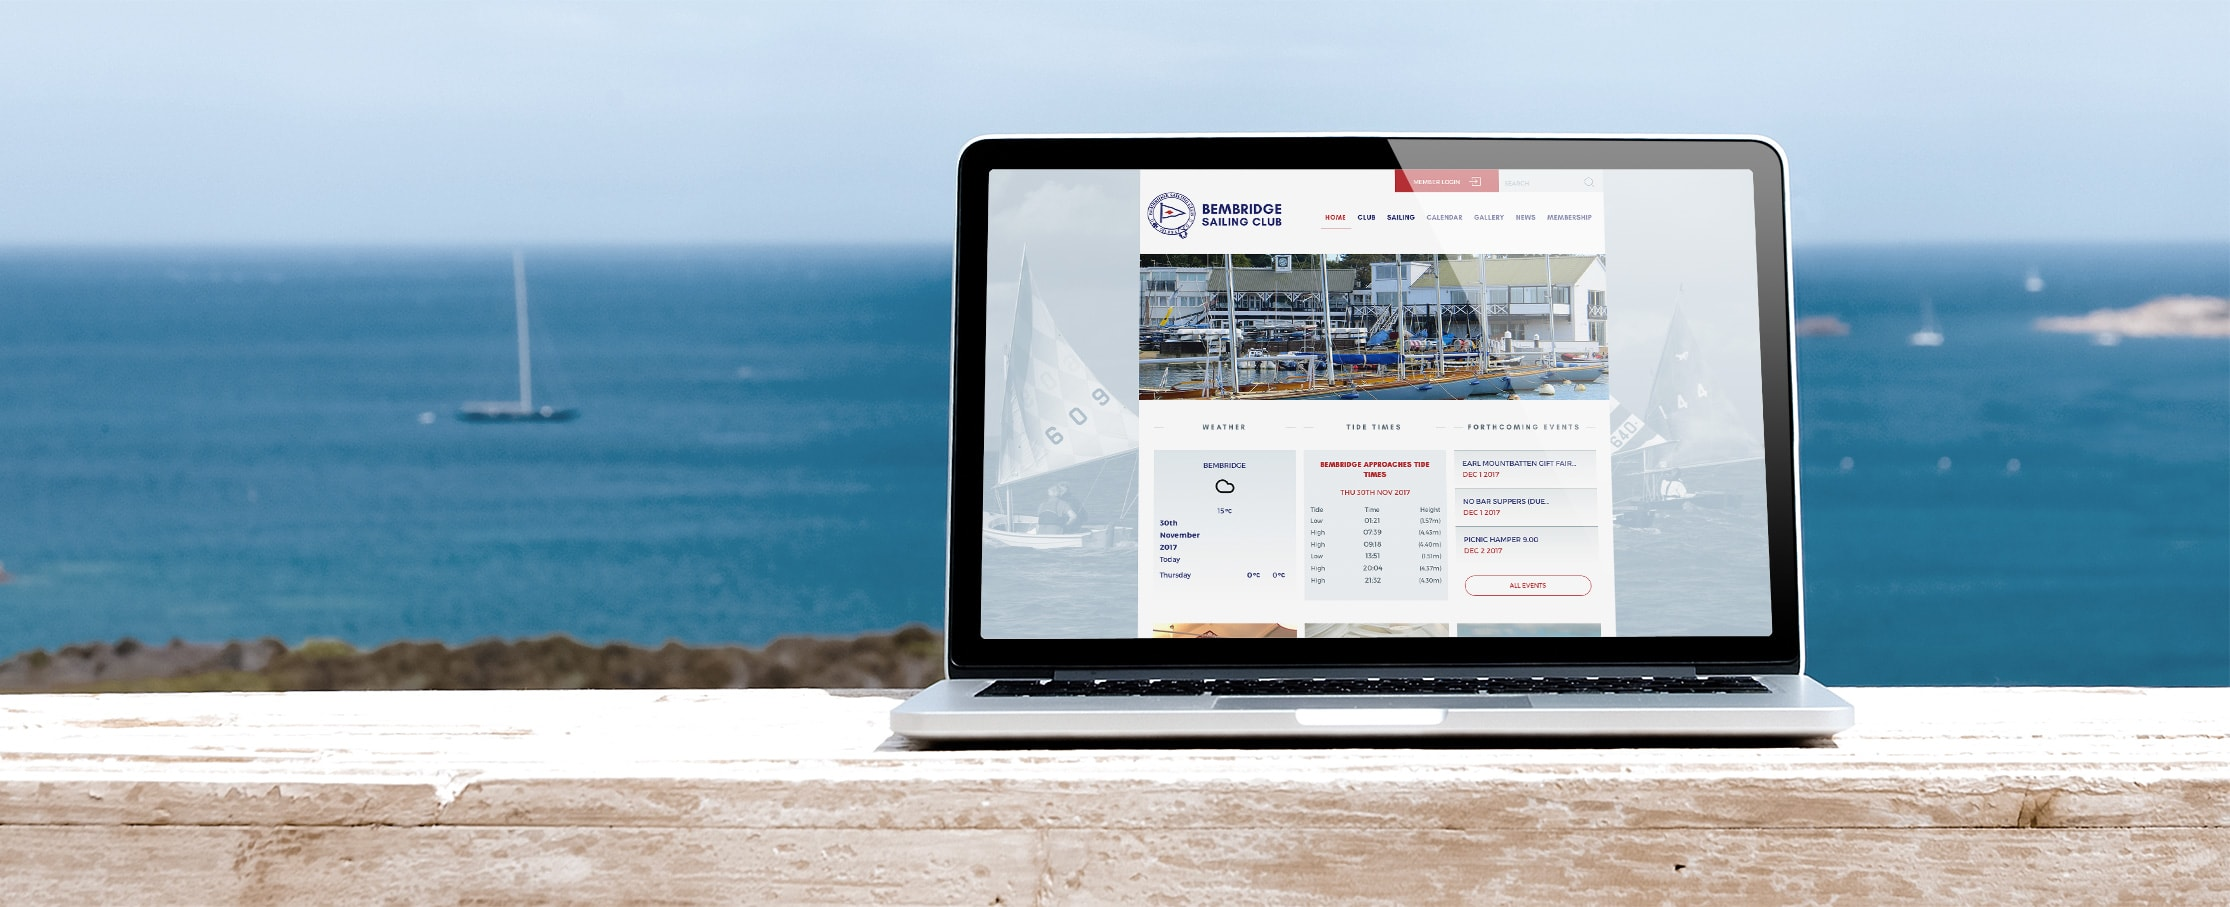 Sailing club web development Bembridge Sailing Club